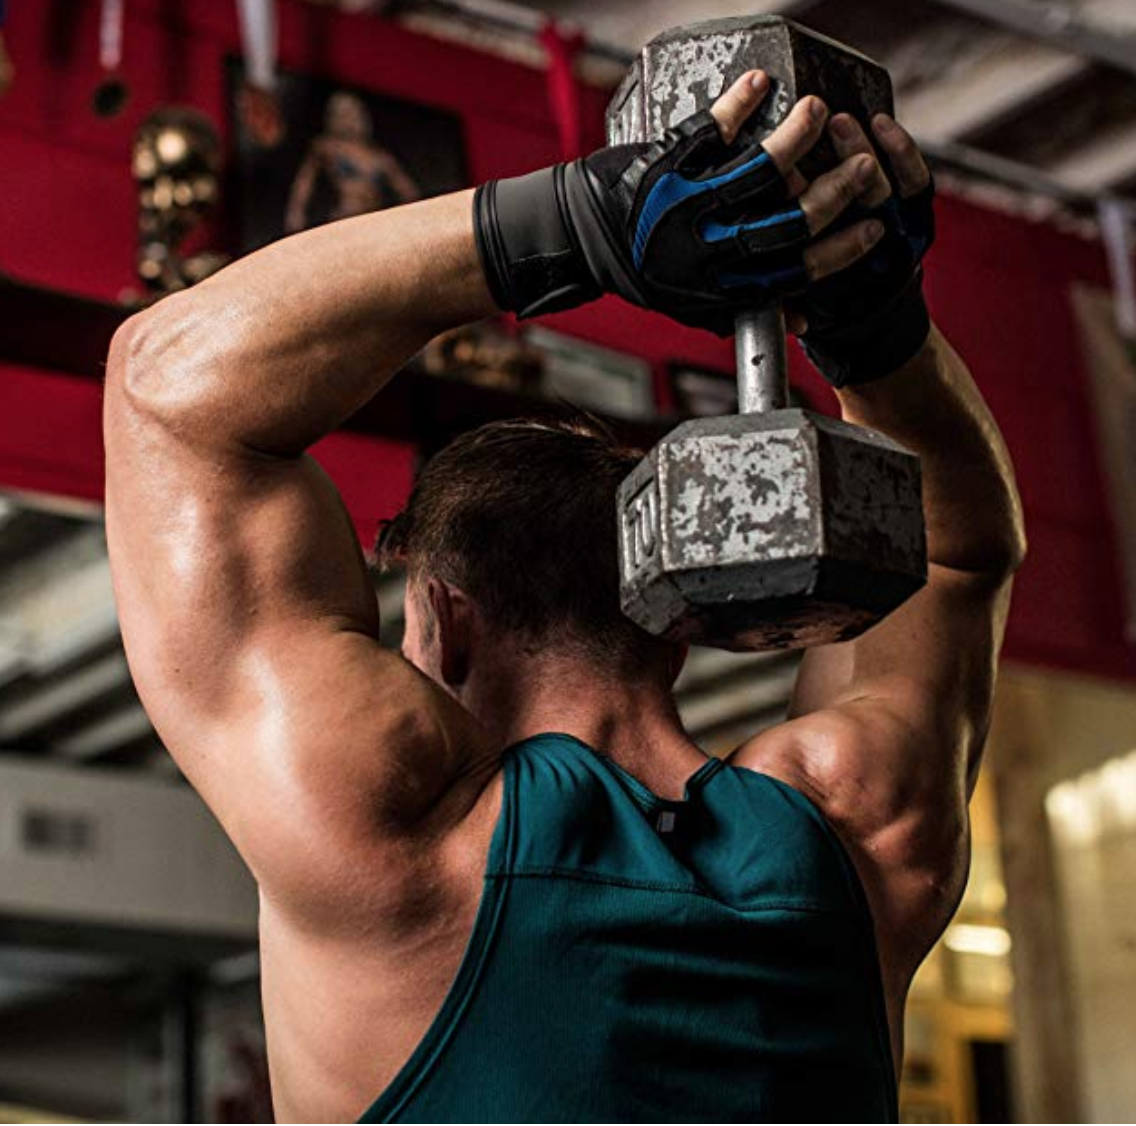 Lifting gloves for gym use